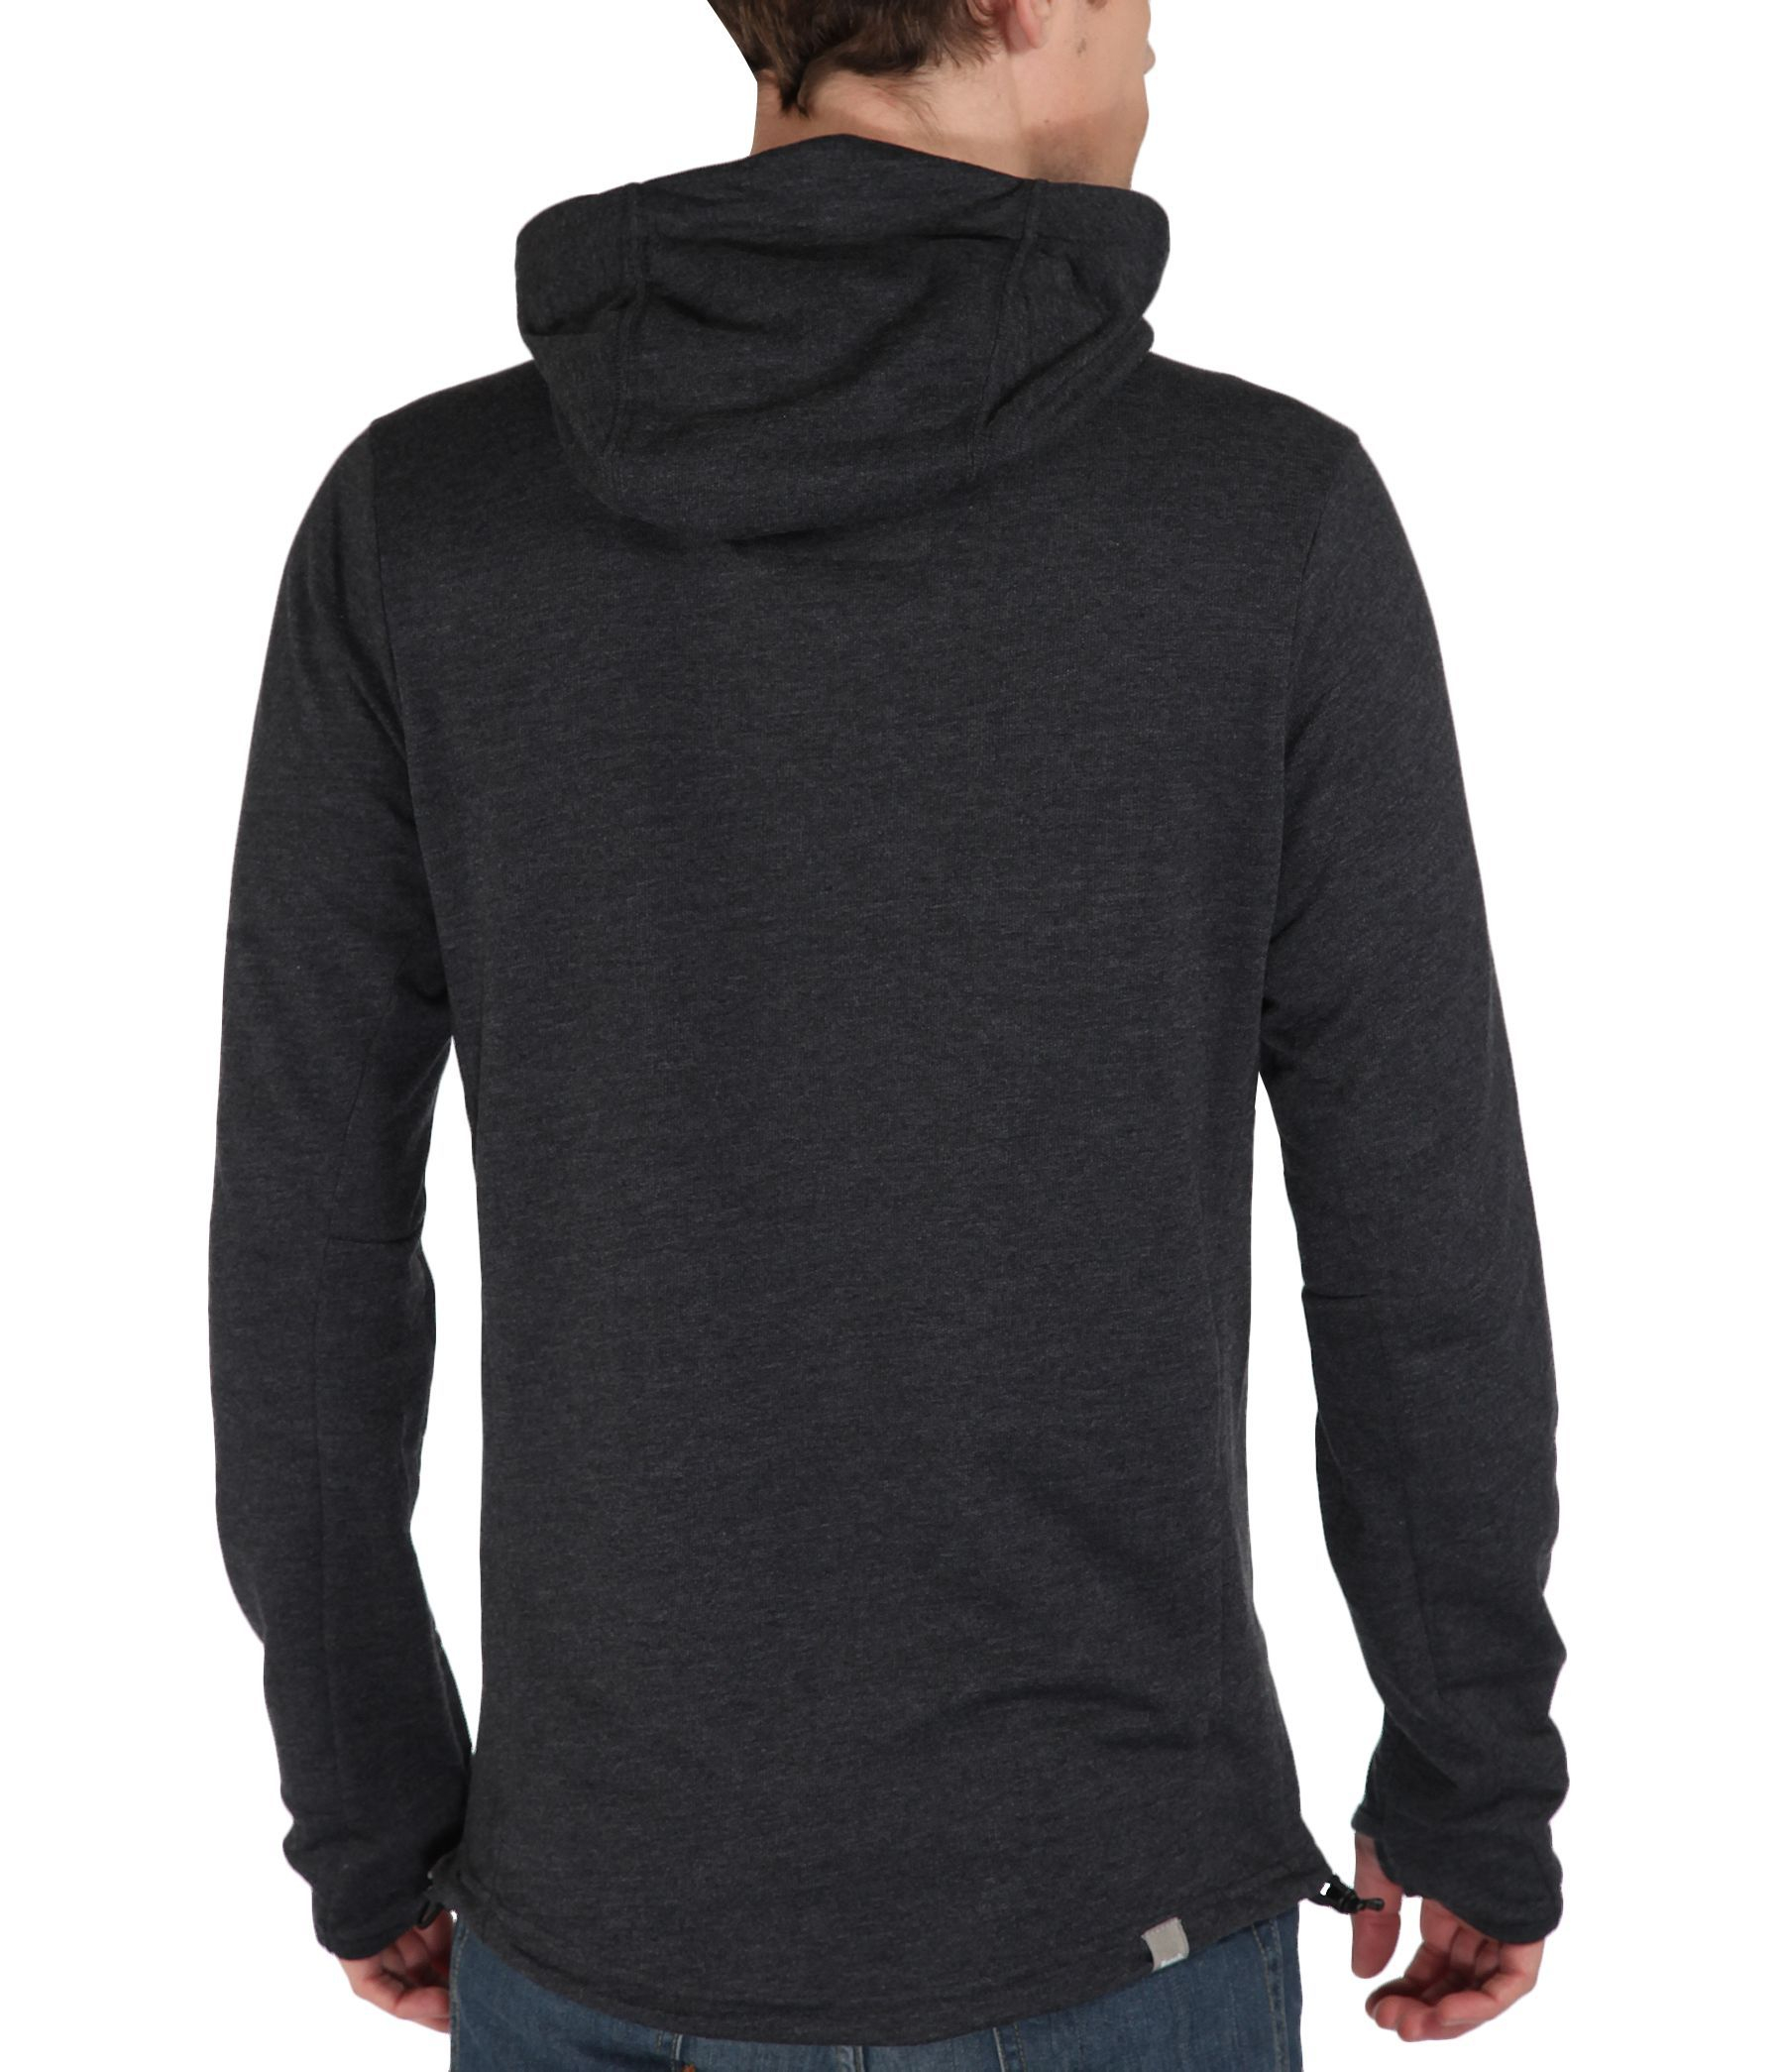 Bench Achiever Plain Zip Thru Hoodie In Black For Men Lyst